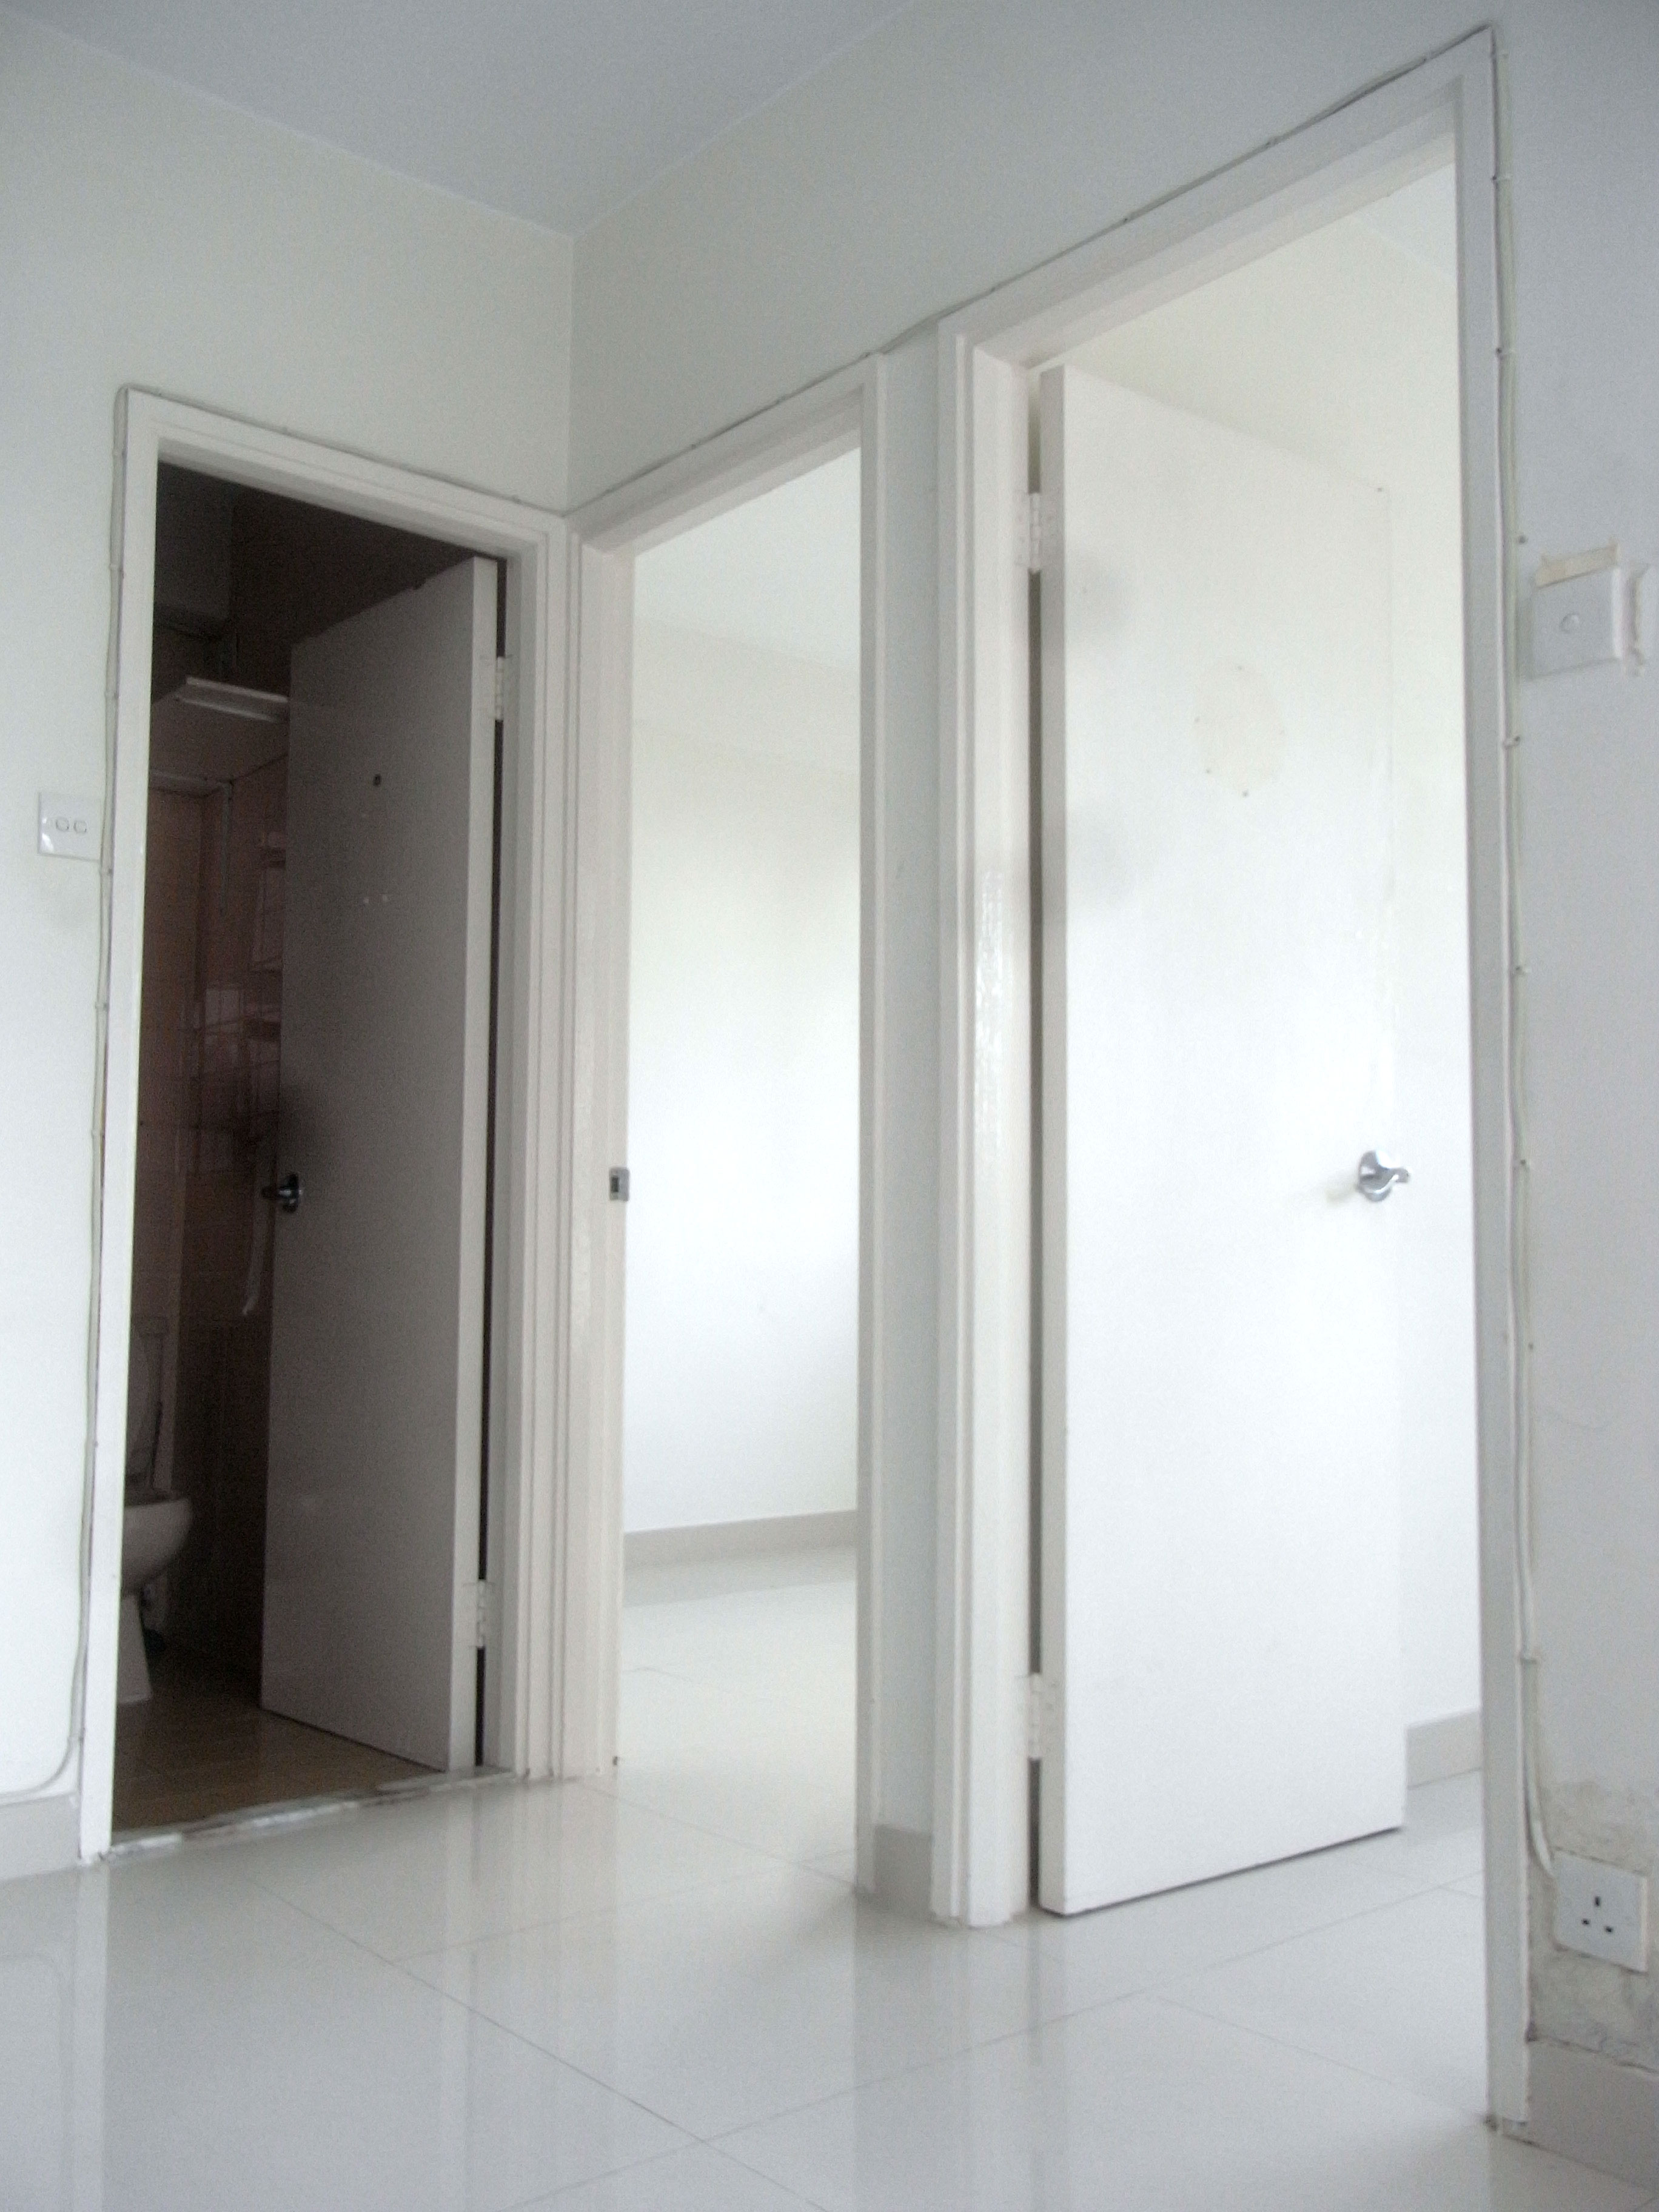 Images of bedroom doors good decorating ideas Flat interior images